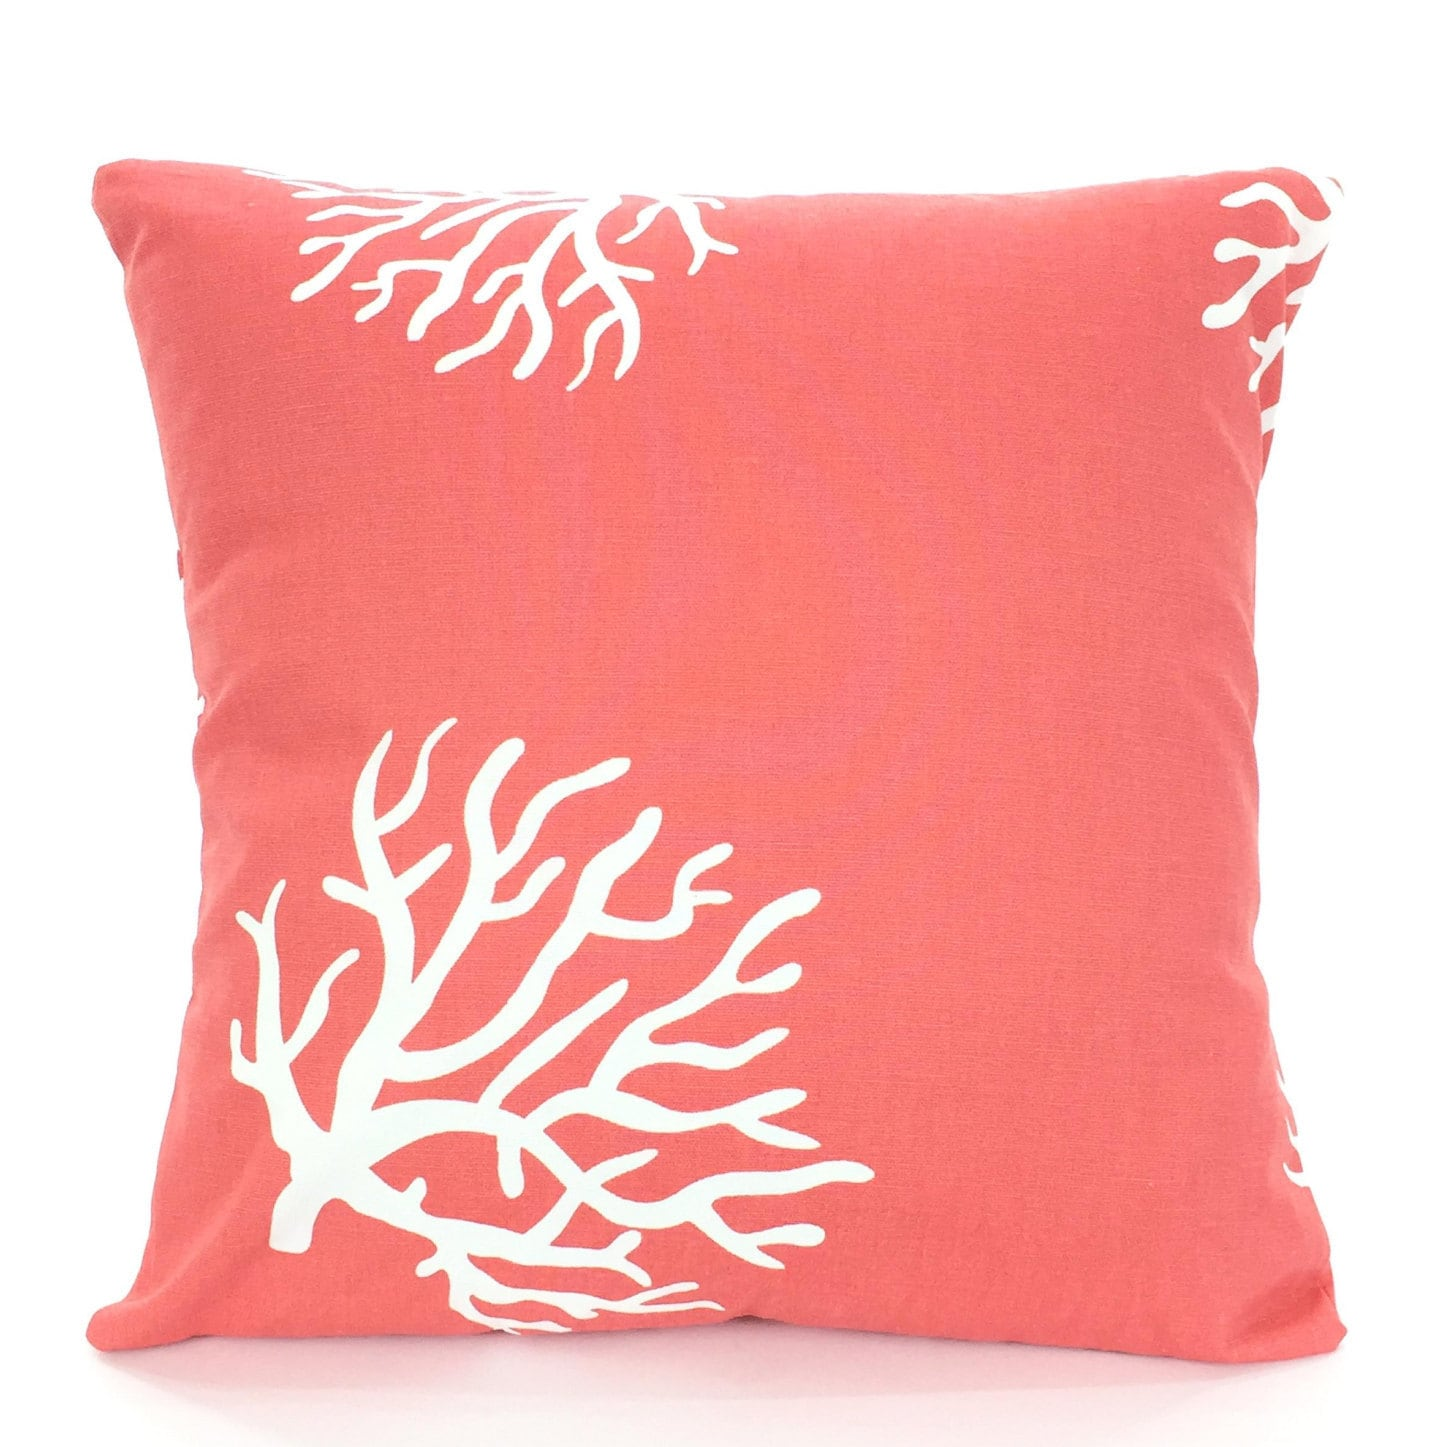 Nautical Sofa Throws Coral Throw Pillow Covers Nautical Cushion Covers Decorative Throw Pillow Coral White Beach Decor Couch Sofa Bed Cotton Pillows All Sizes